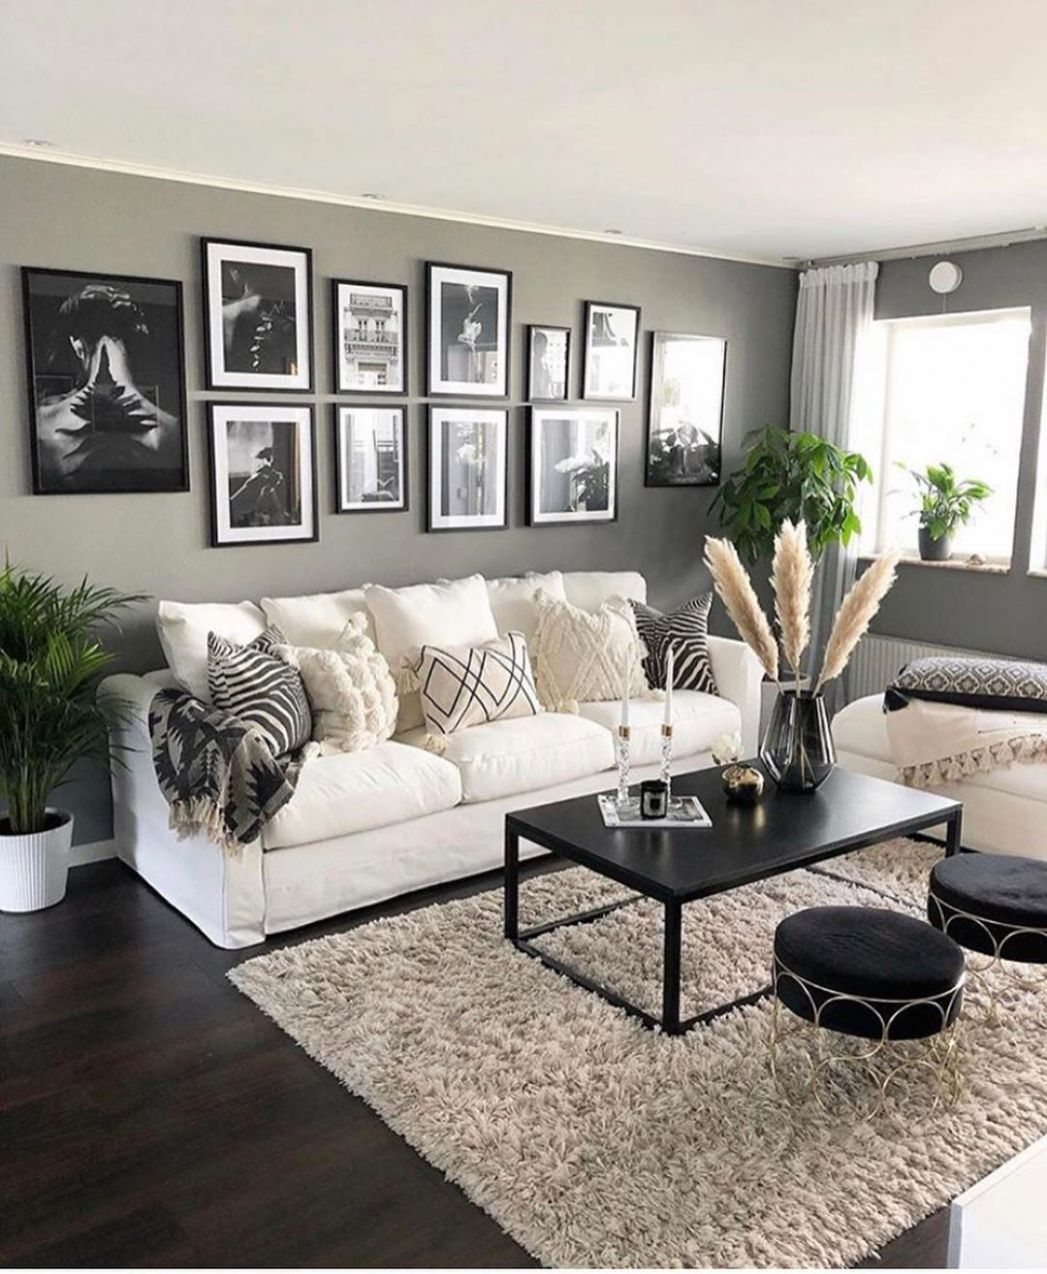 Beautiful home decor inspiration @the_welcoming_home #homedecor ..